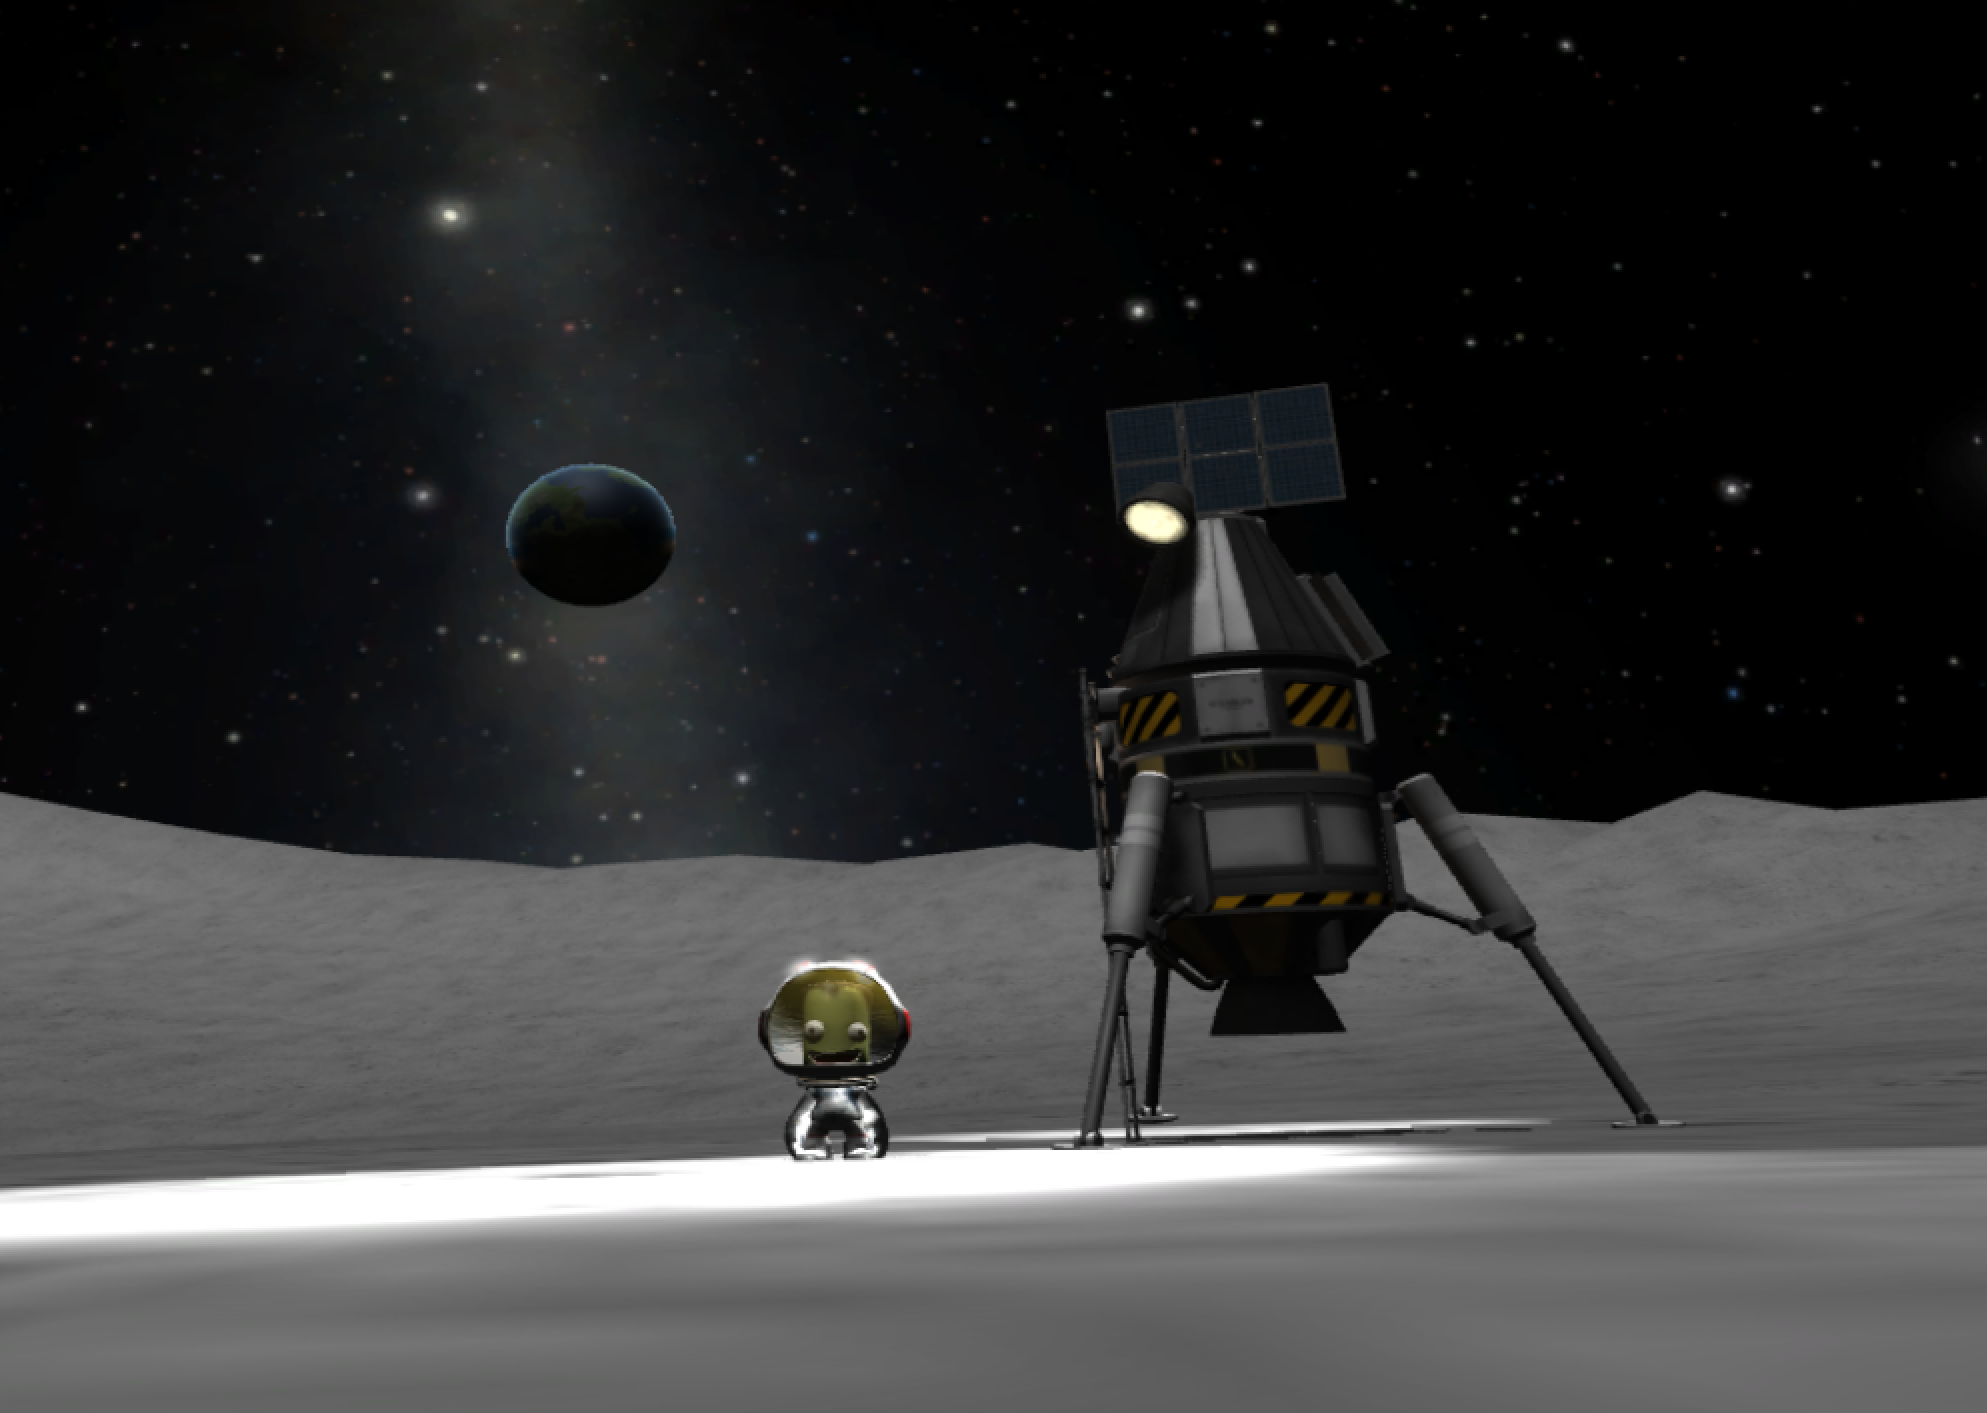 A kerbal stands proudly on the moon next to a small, three-legged lander. In the background is Kerbin, set against the milky way.